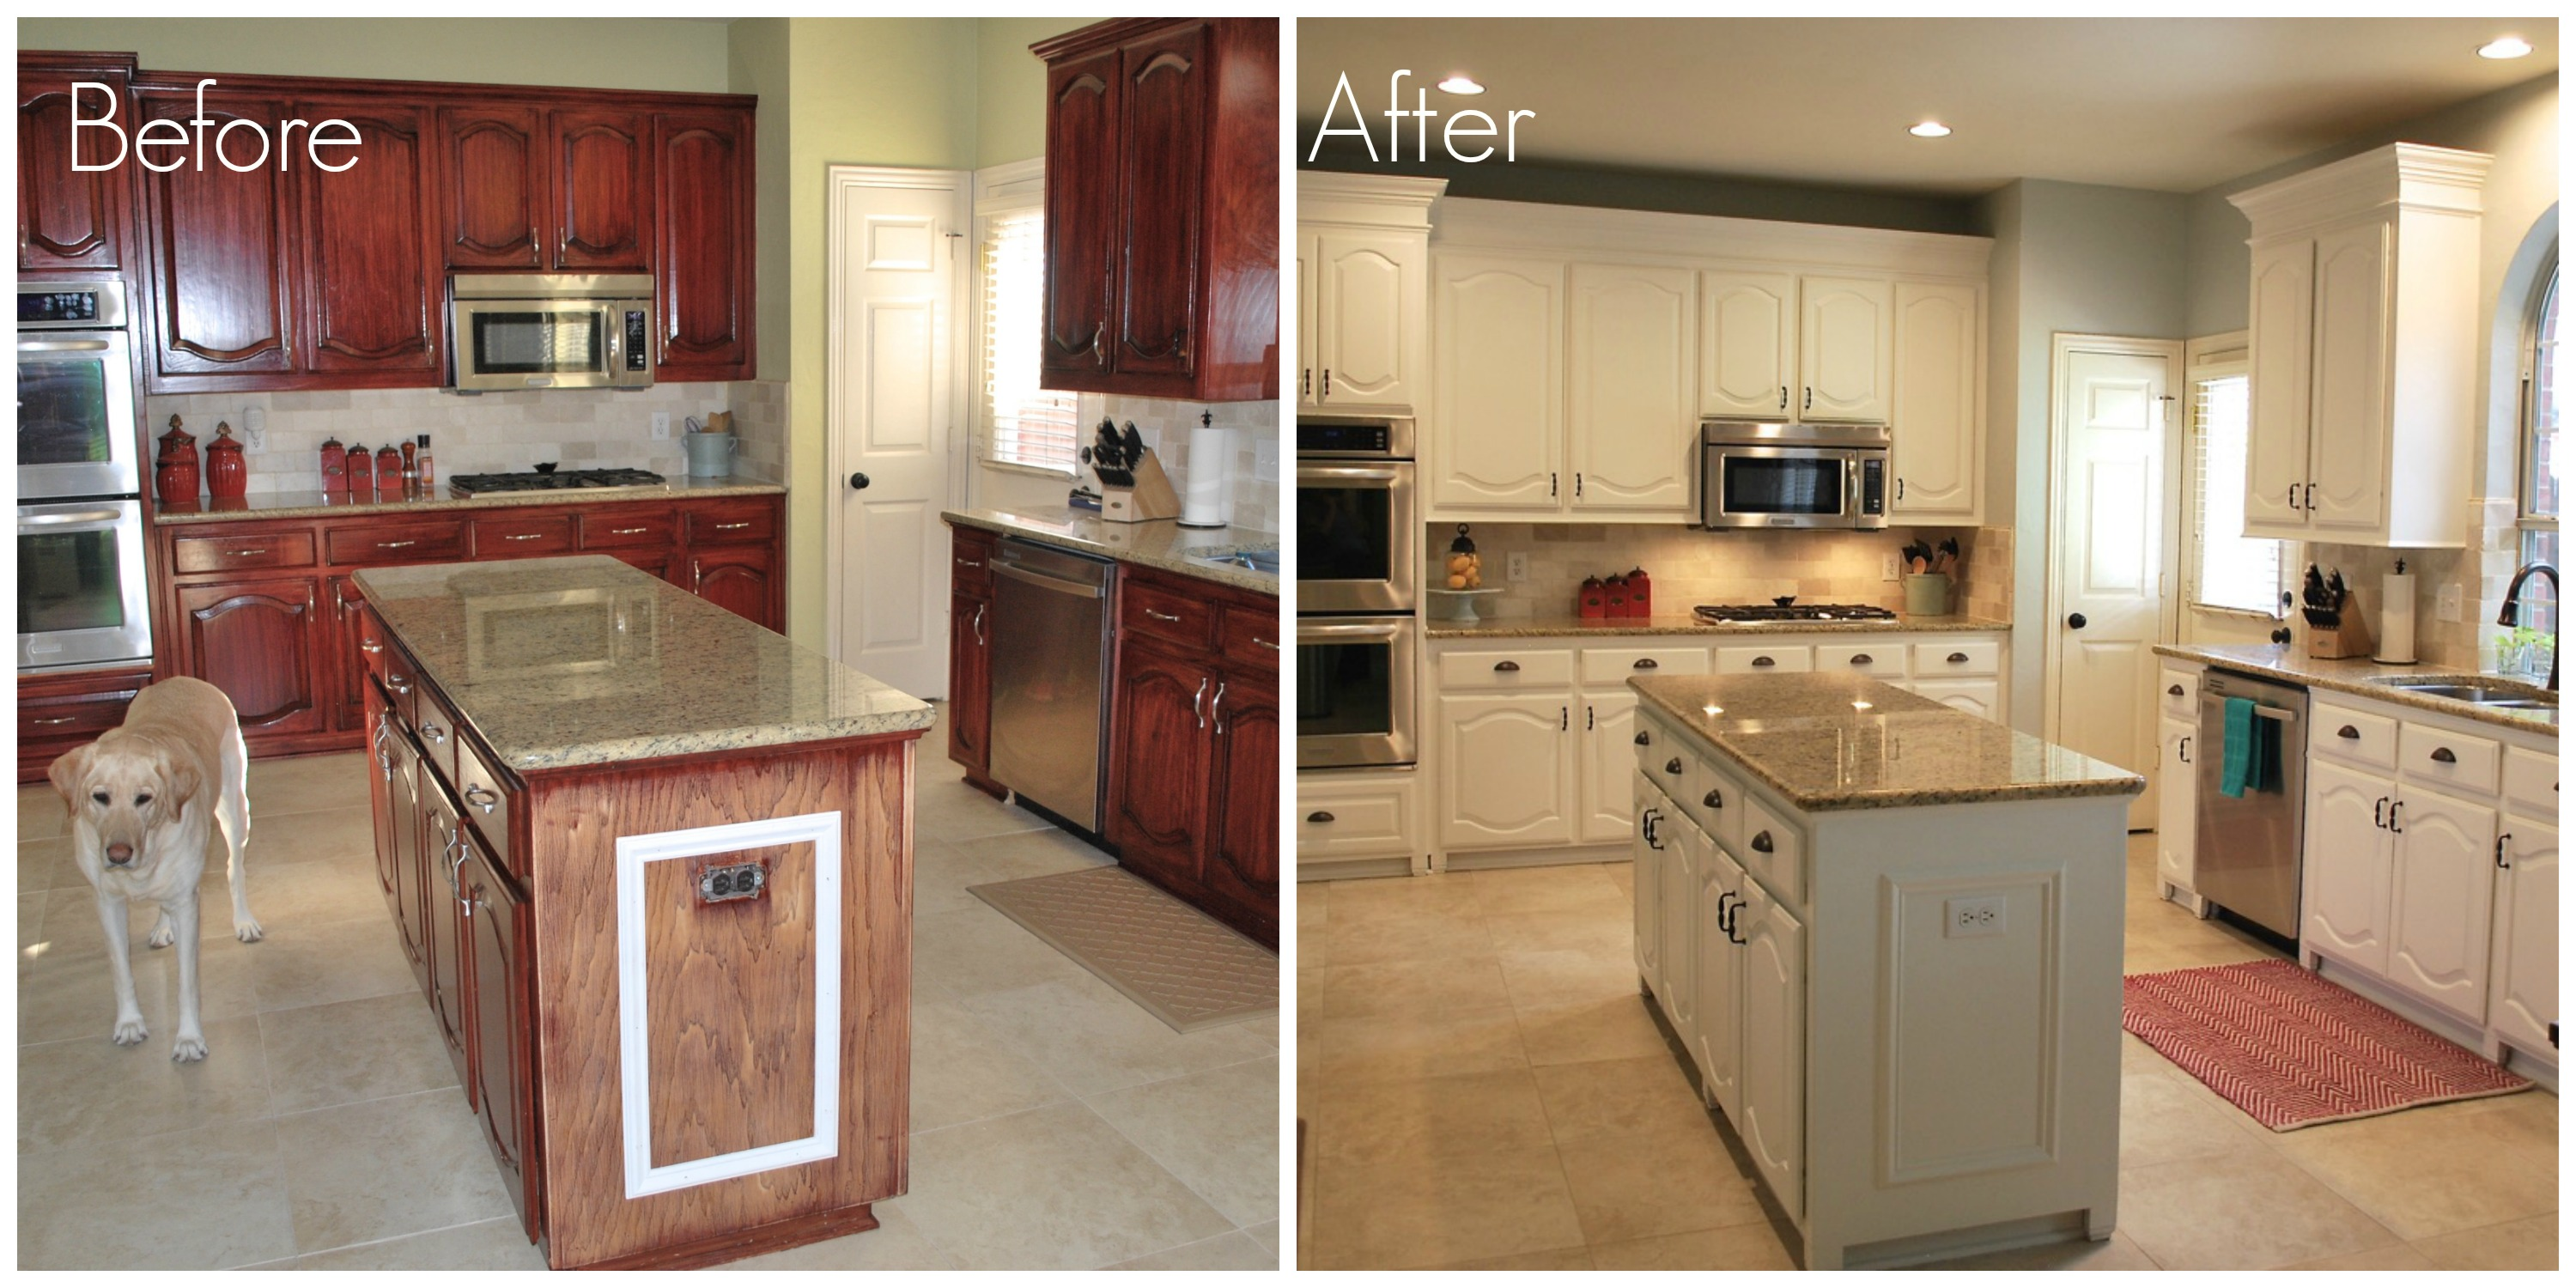 Can Painted Kitchen Cabinets Be Refaced